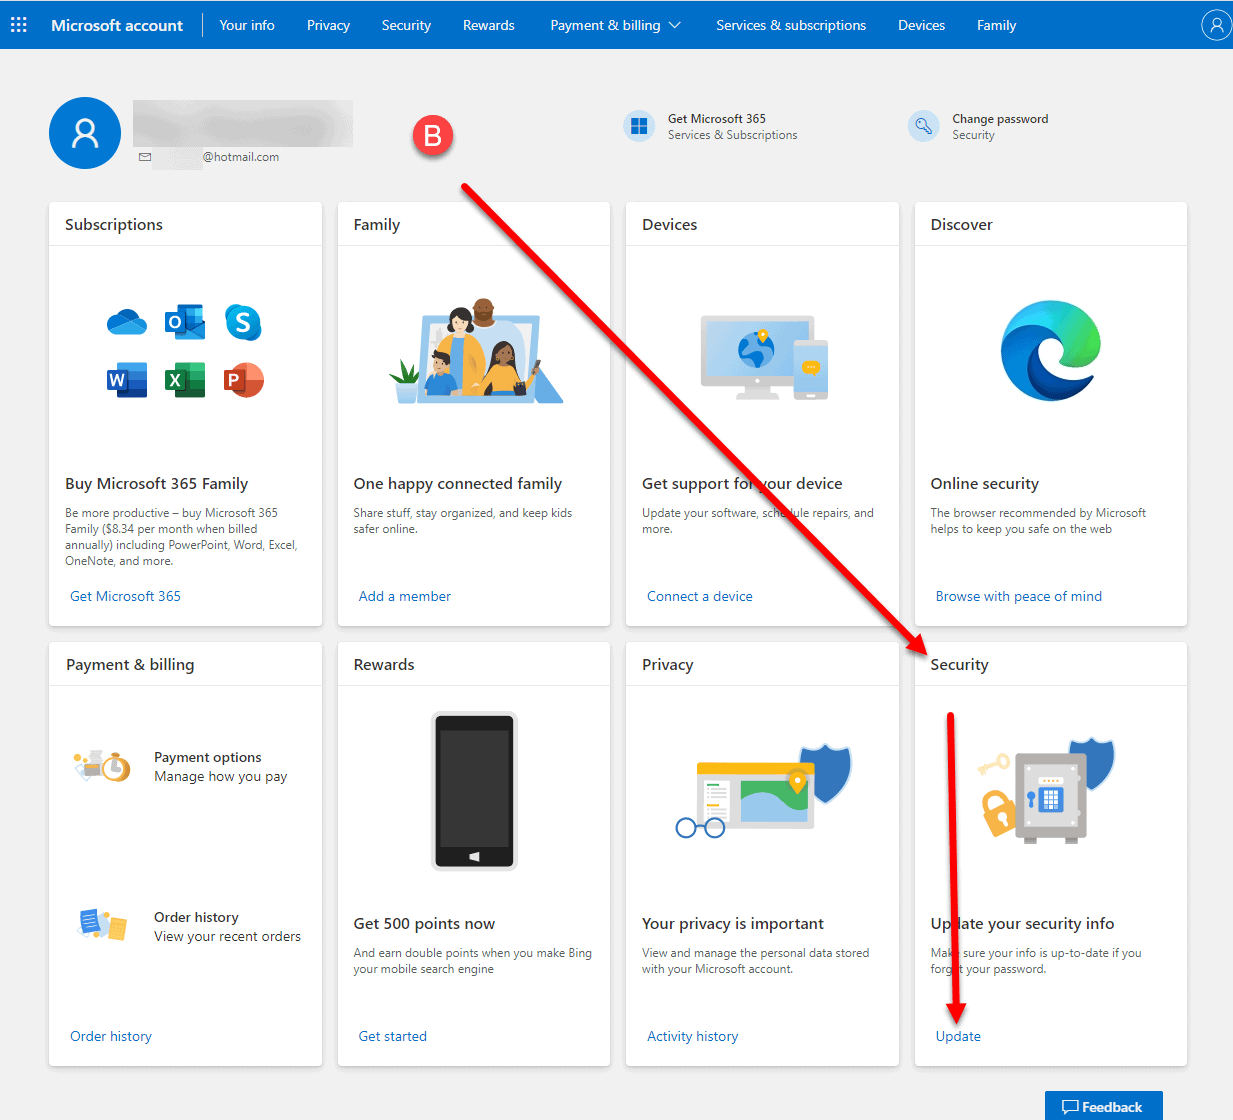 Outlook.com App Password Generation How To Step 2